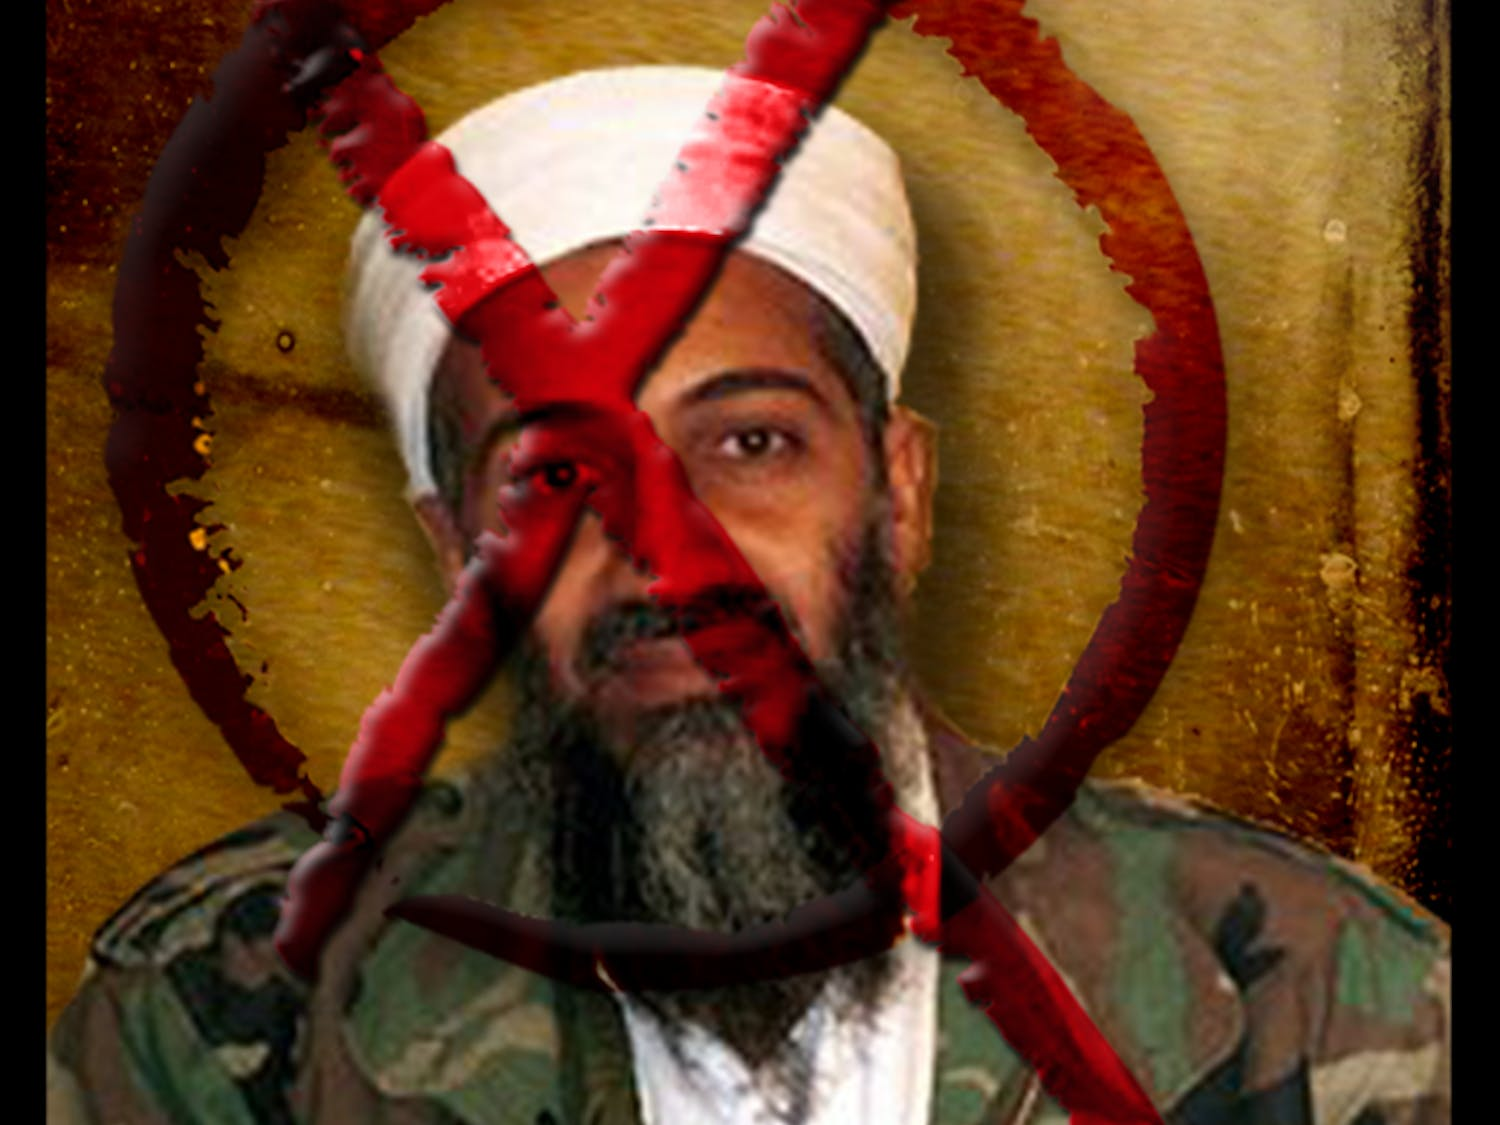 This undated AP file photo shows Osama binLaden. Americans are expected to get a glimpse of Osama binLaden's daily life with the disclosure of home videos showing him strolling around his secret compound.